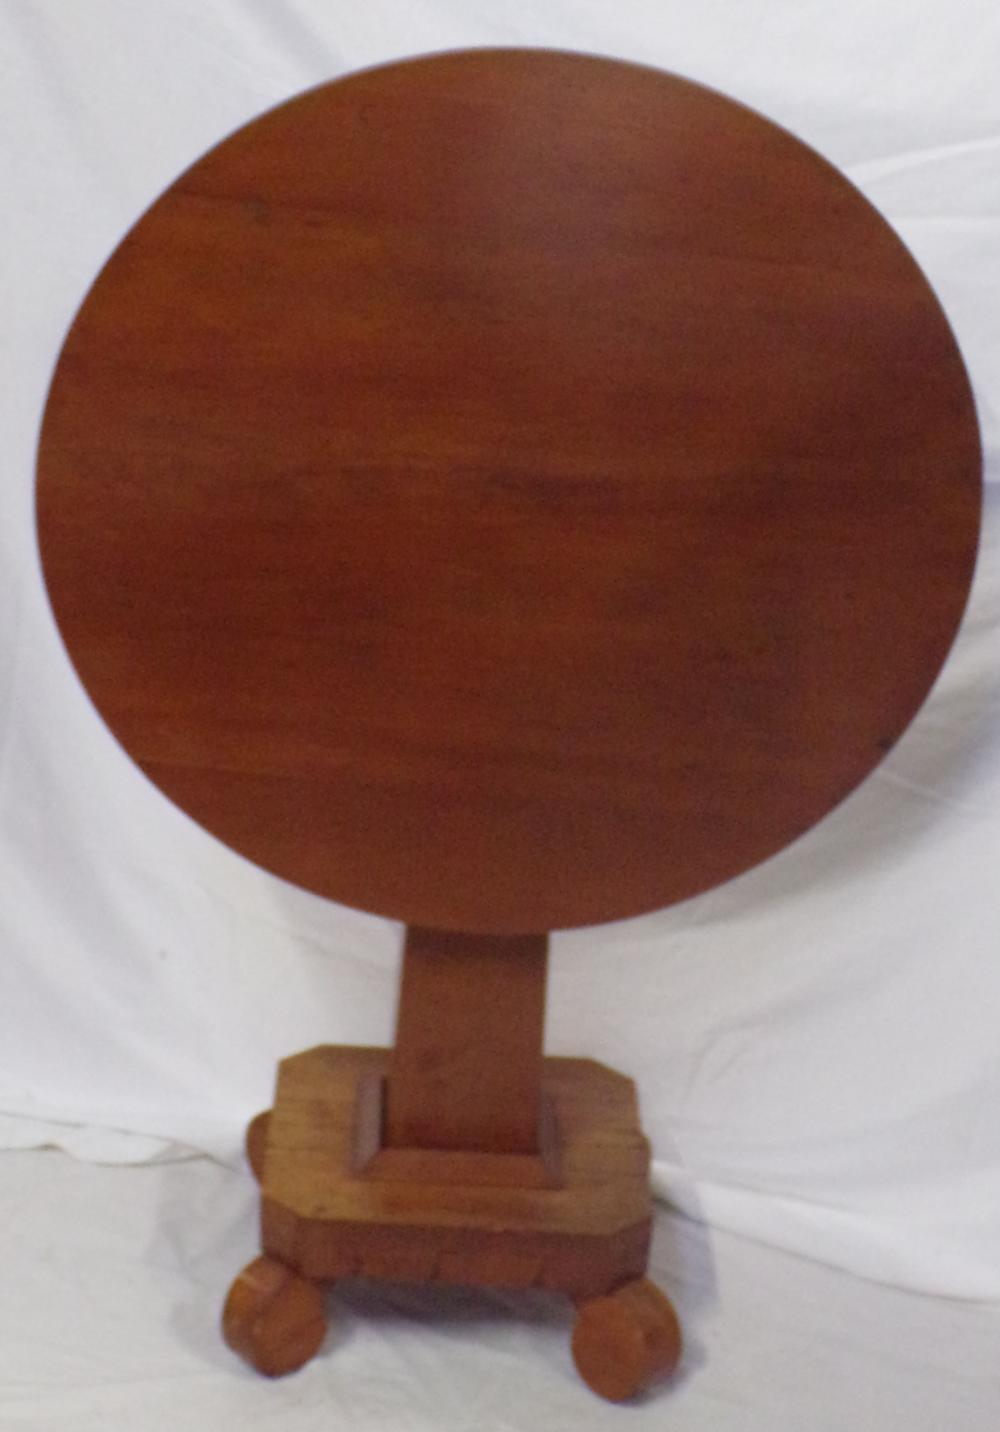 19th century Empire tilt top table having a round top